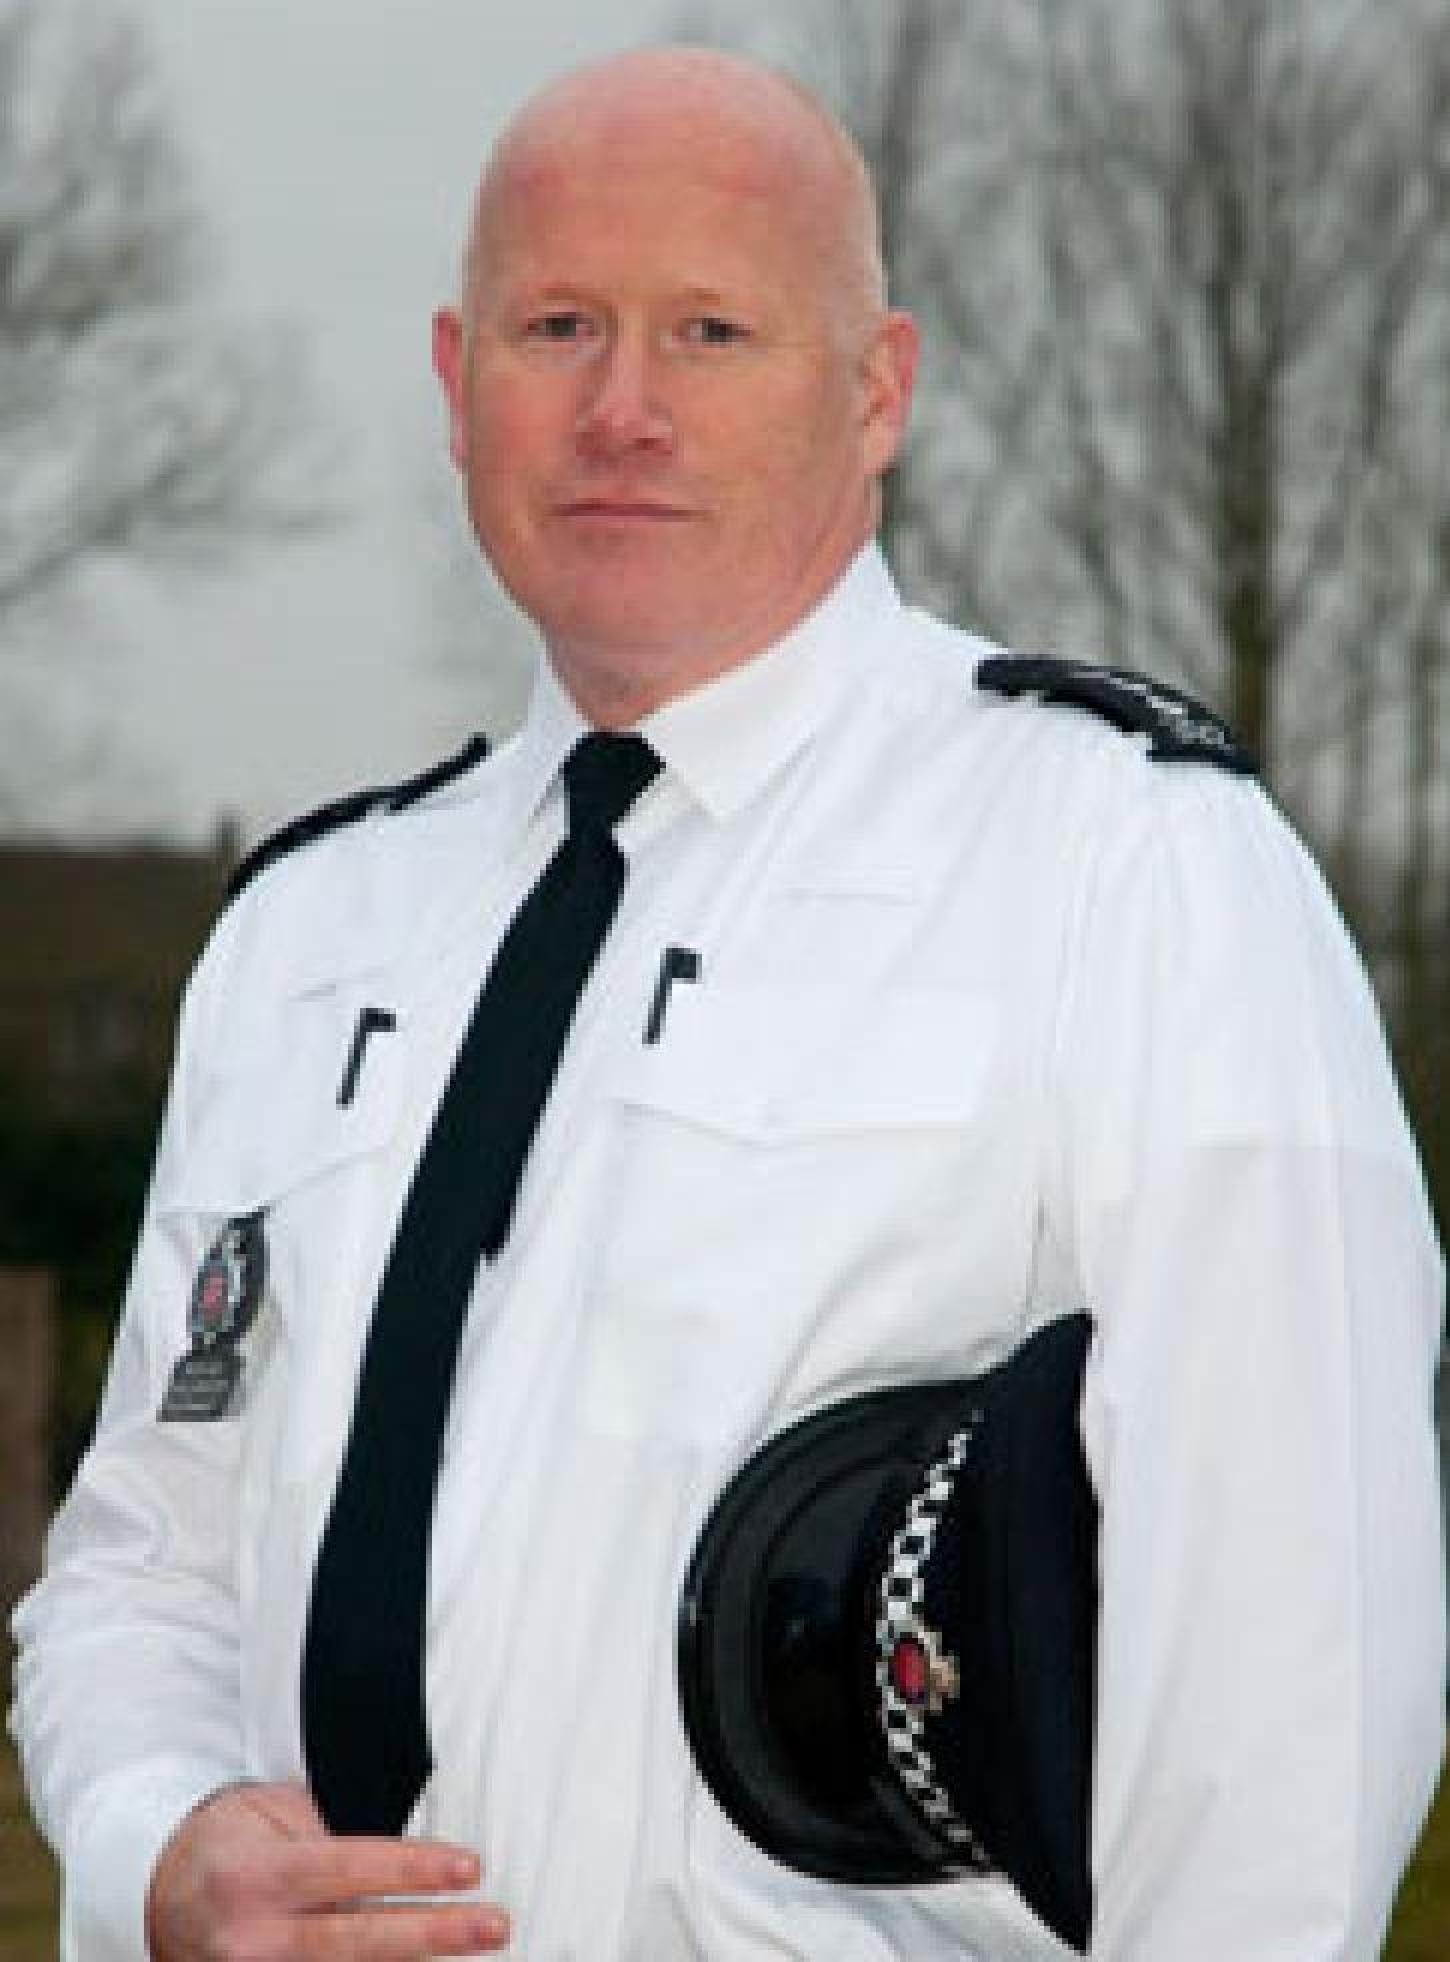 Chief Insp Richard Phillibrown